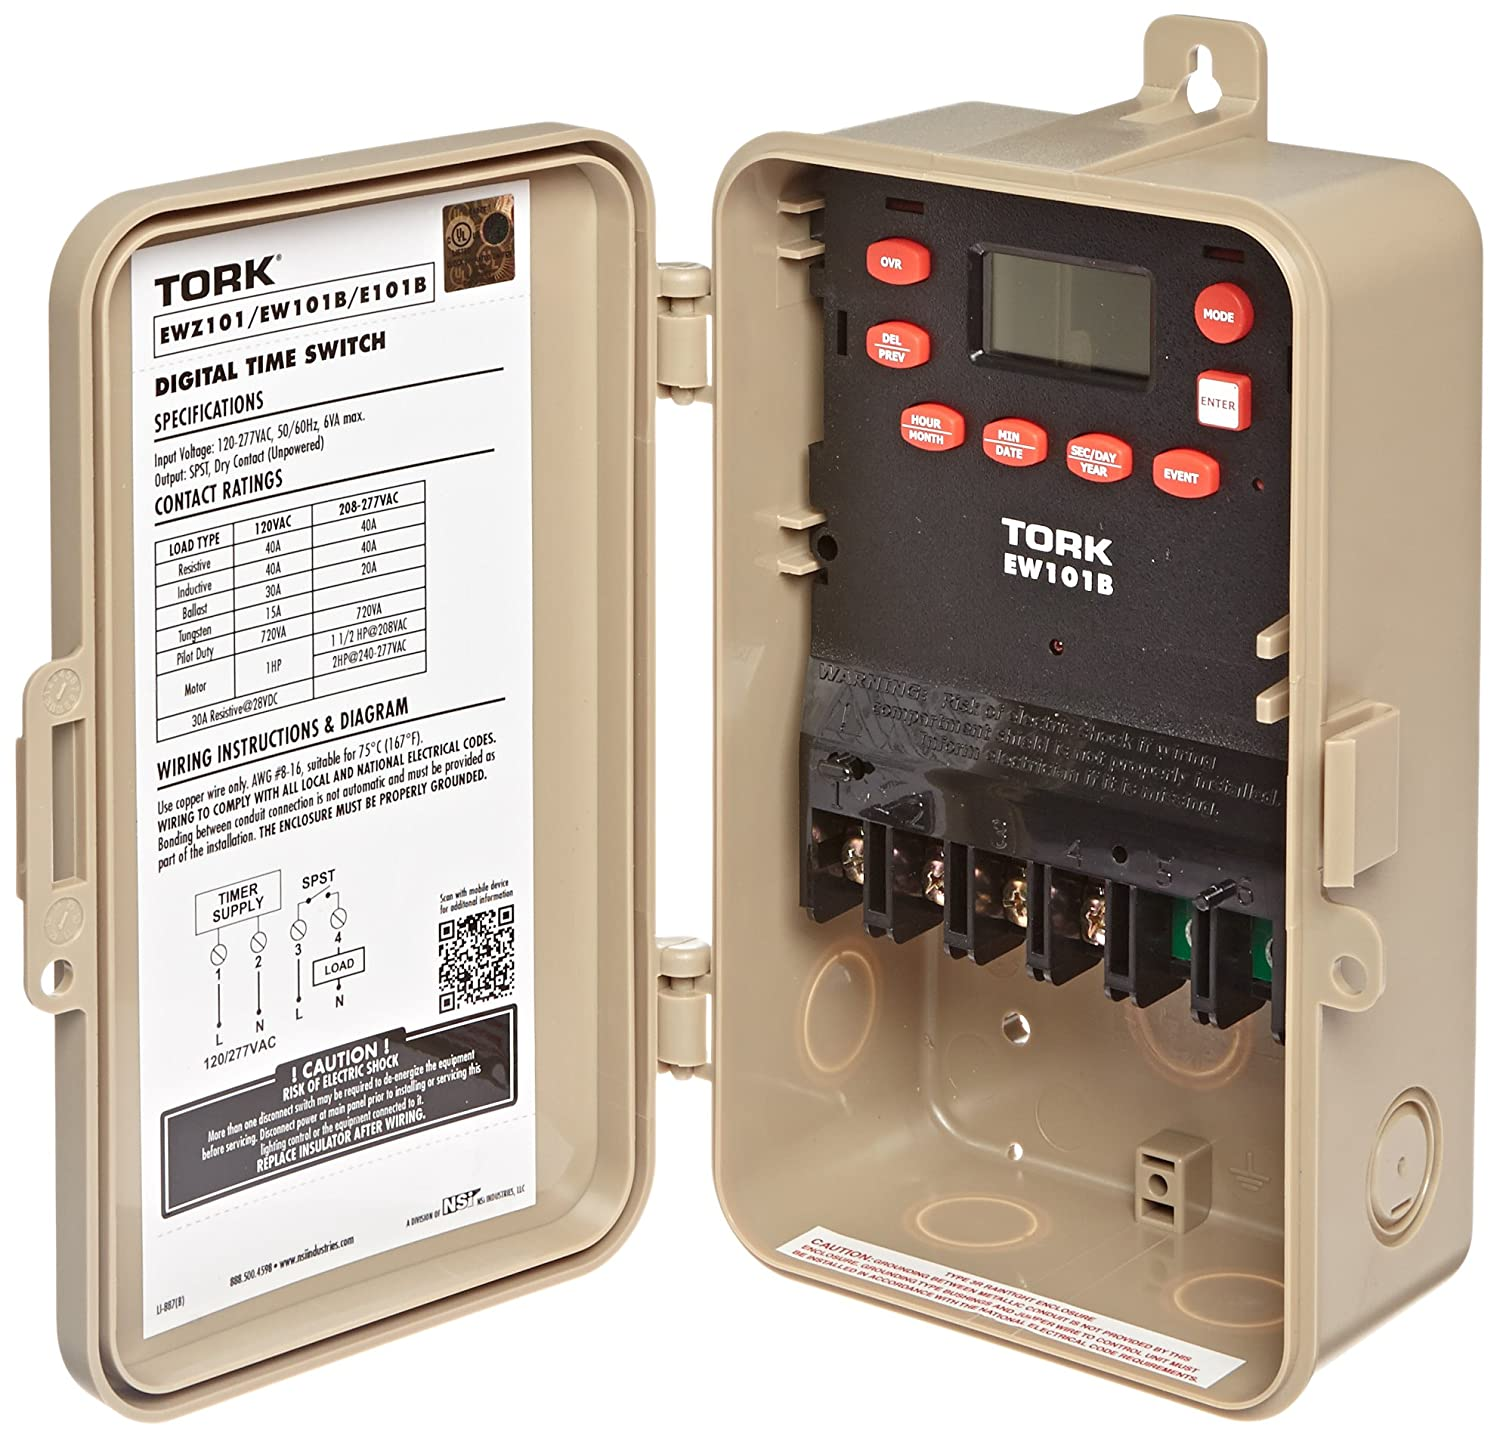 81Tdd00FrvL._SL1500_ amazon com ew series multipurpose control 7 day time switch, 120 tork ewz101 wiring diagram at webbmarketing.co